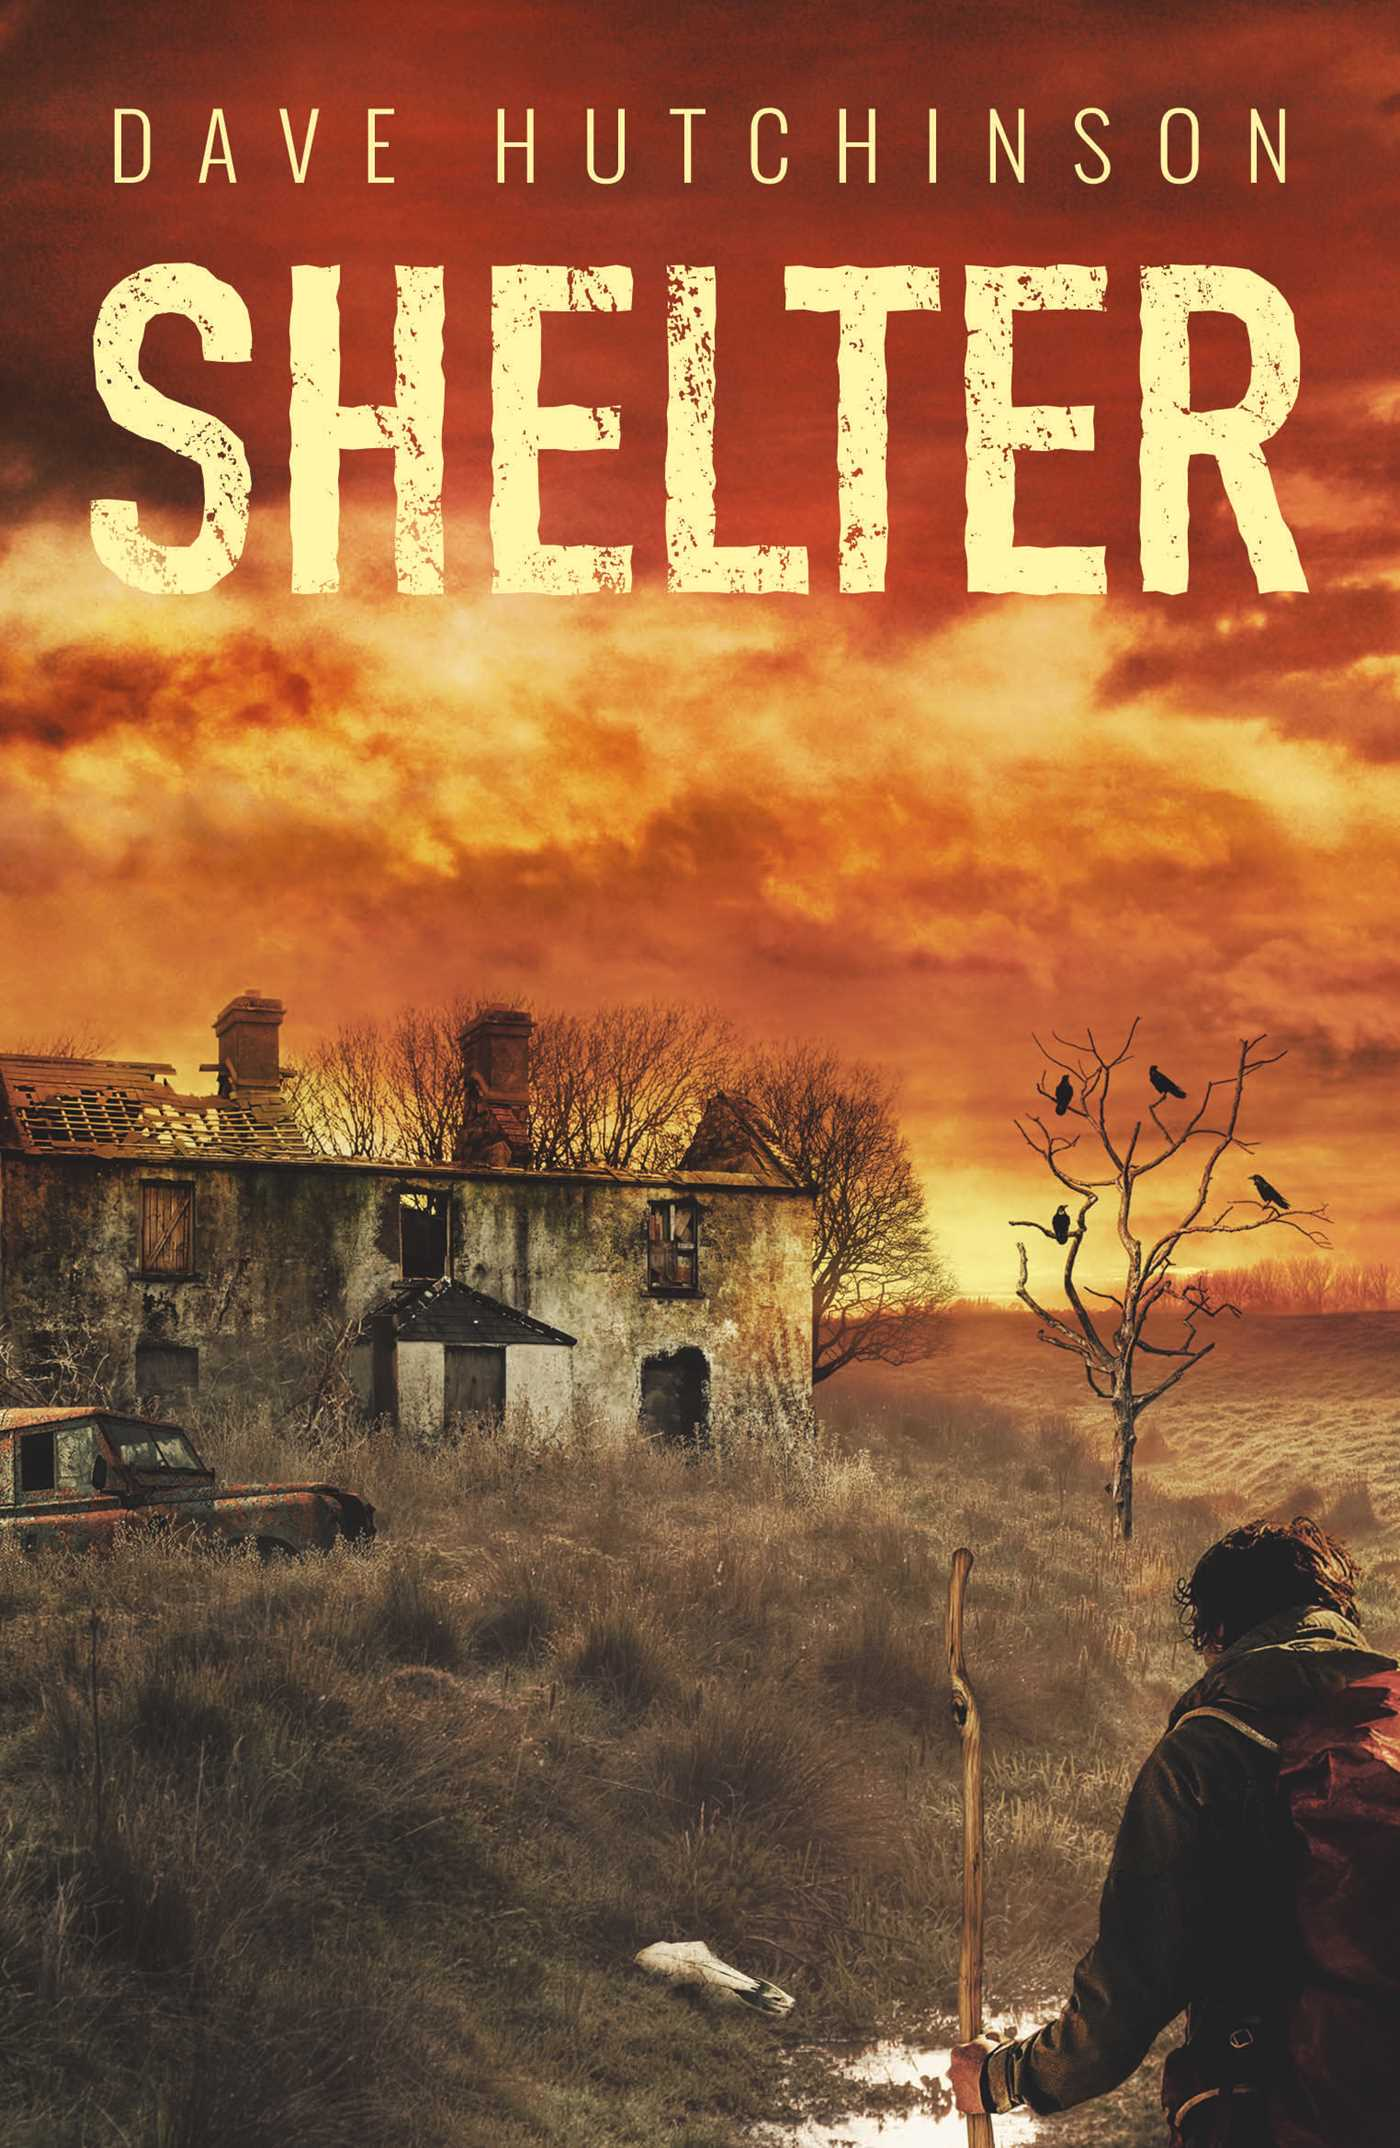 Shelter, a novel by Dave Hutchinson